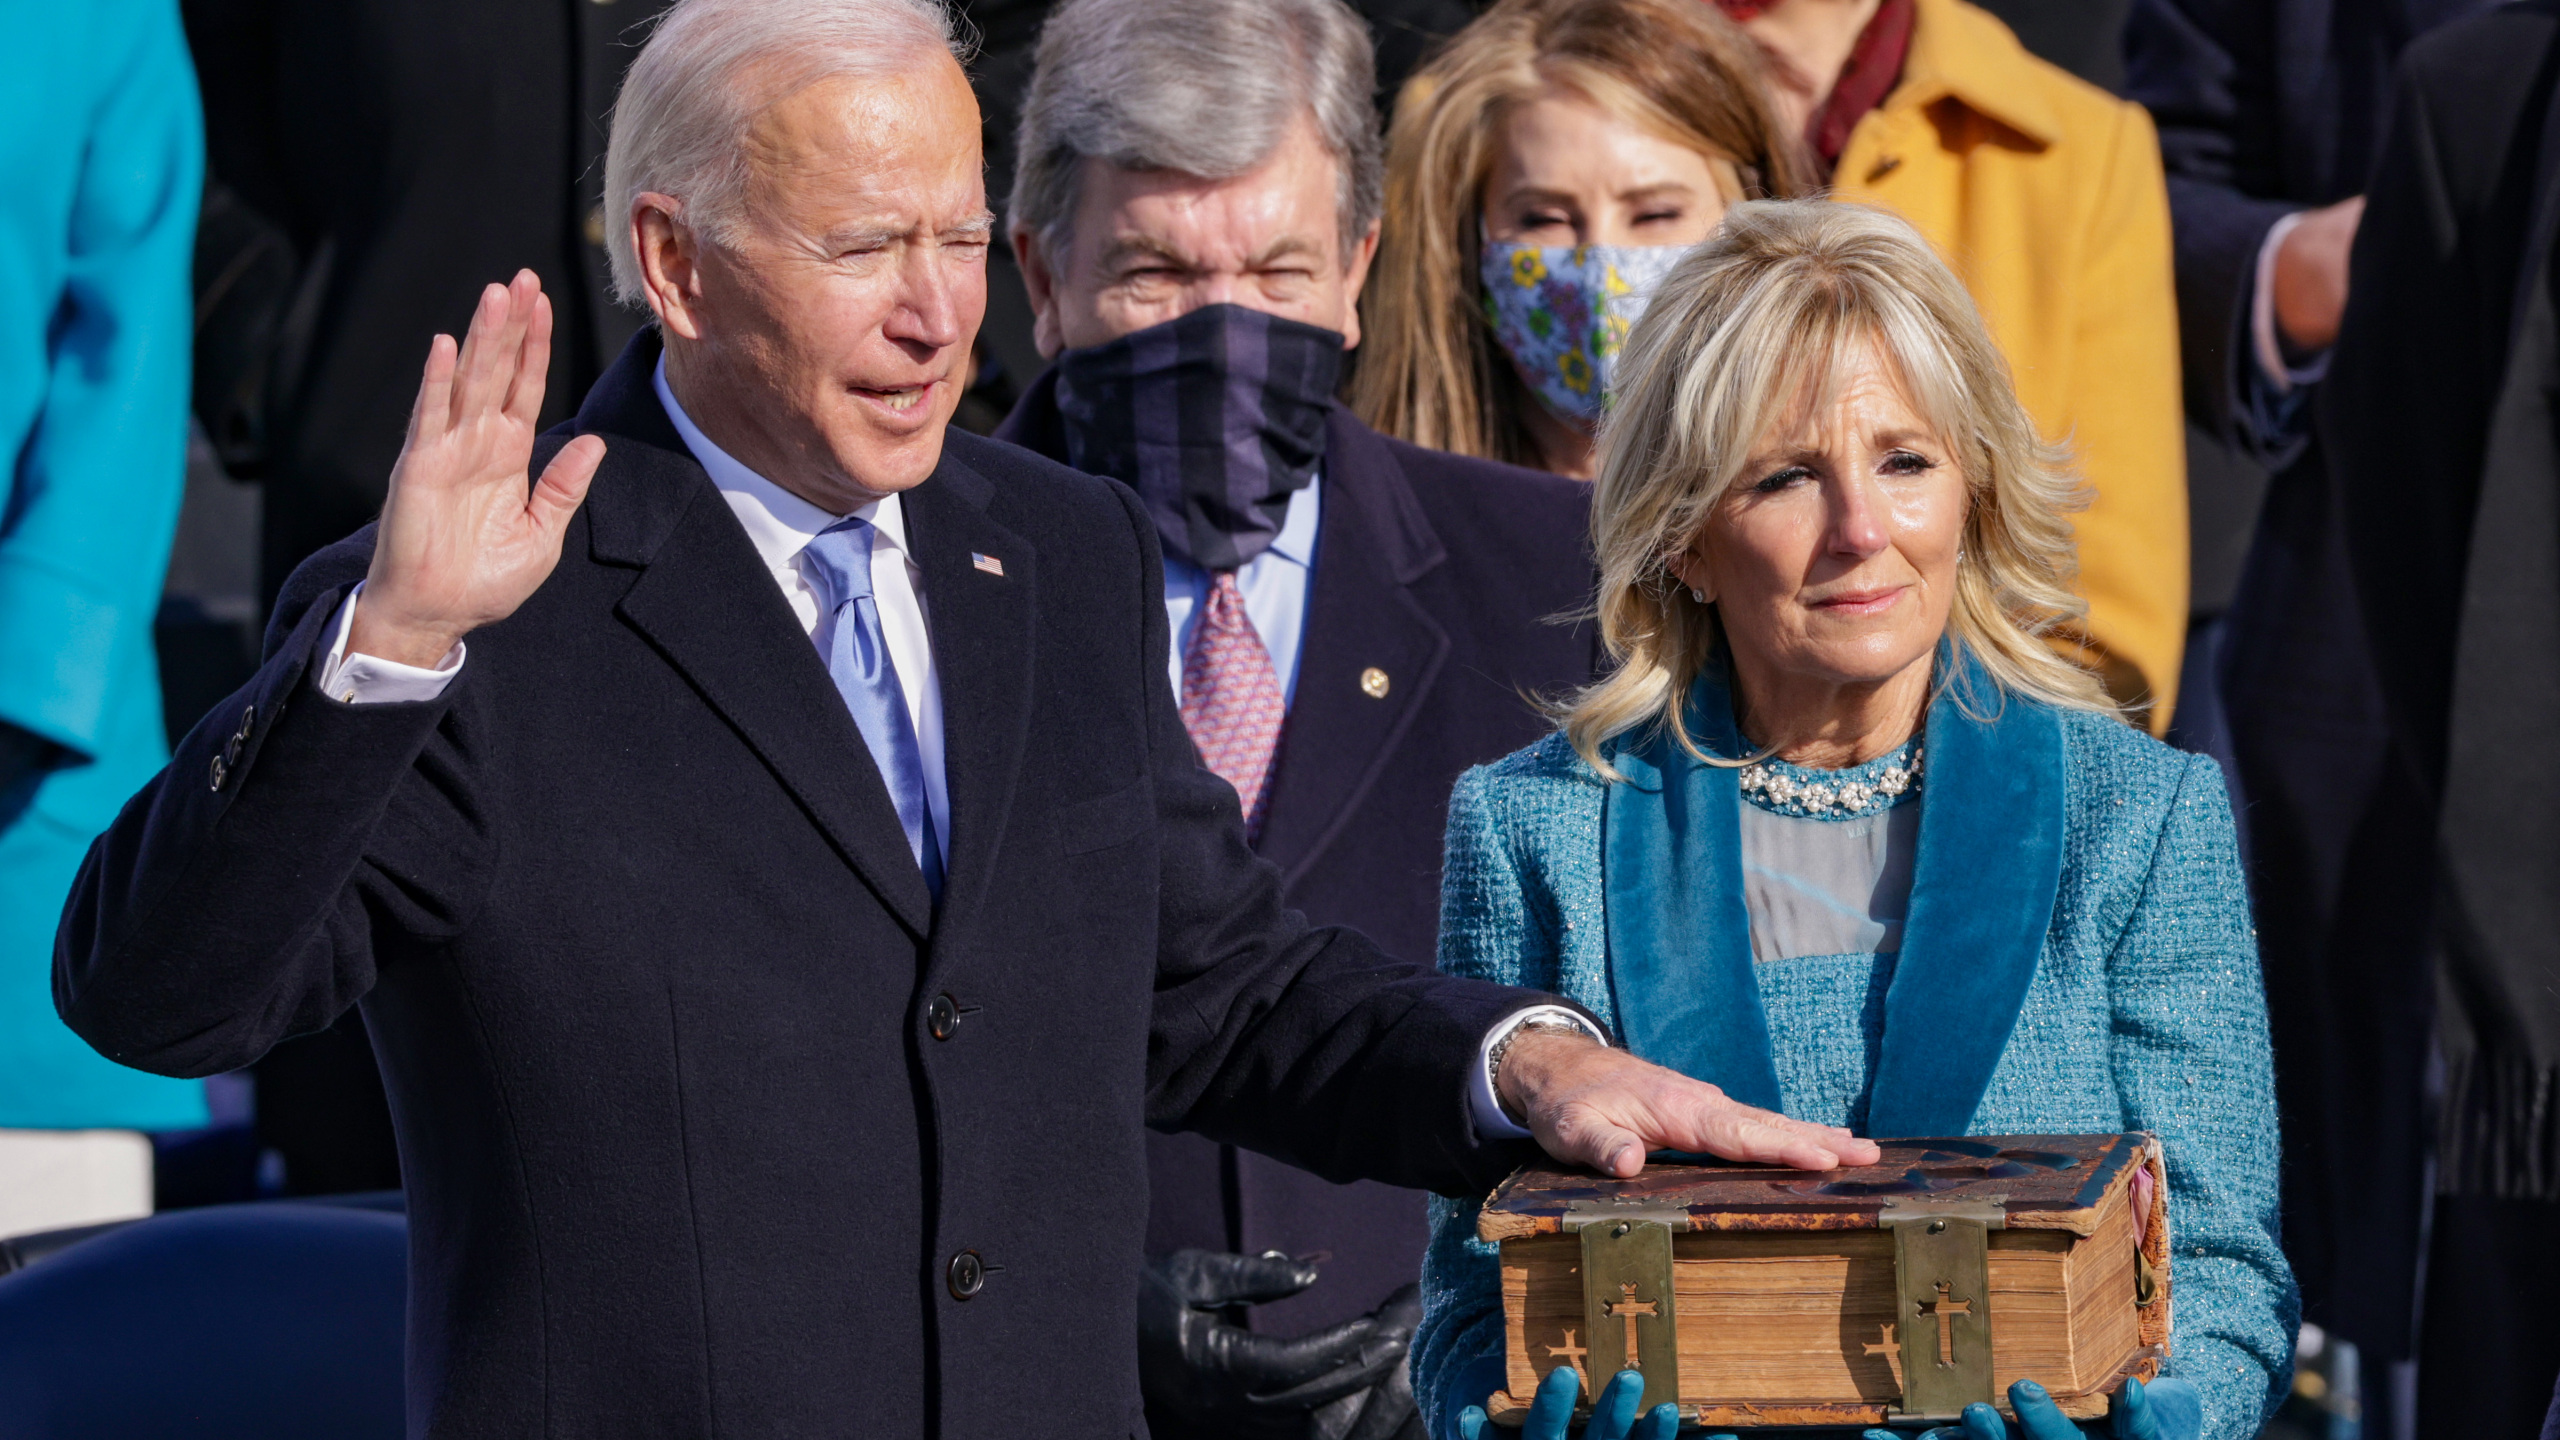 Joe Biden Sworn-In As 46th US President